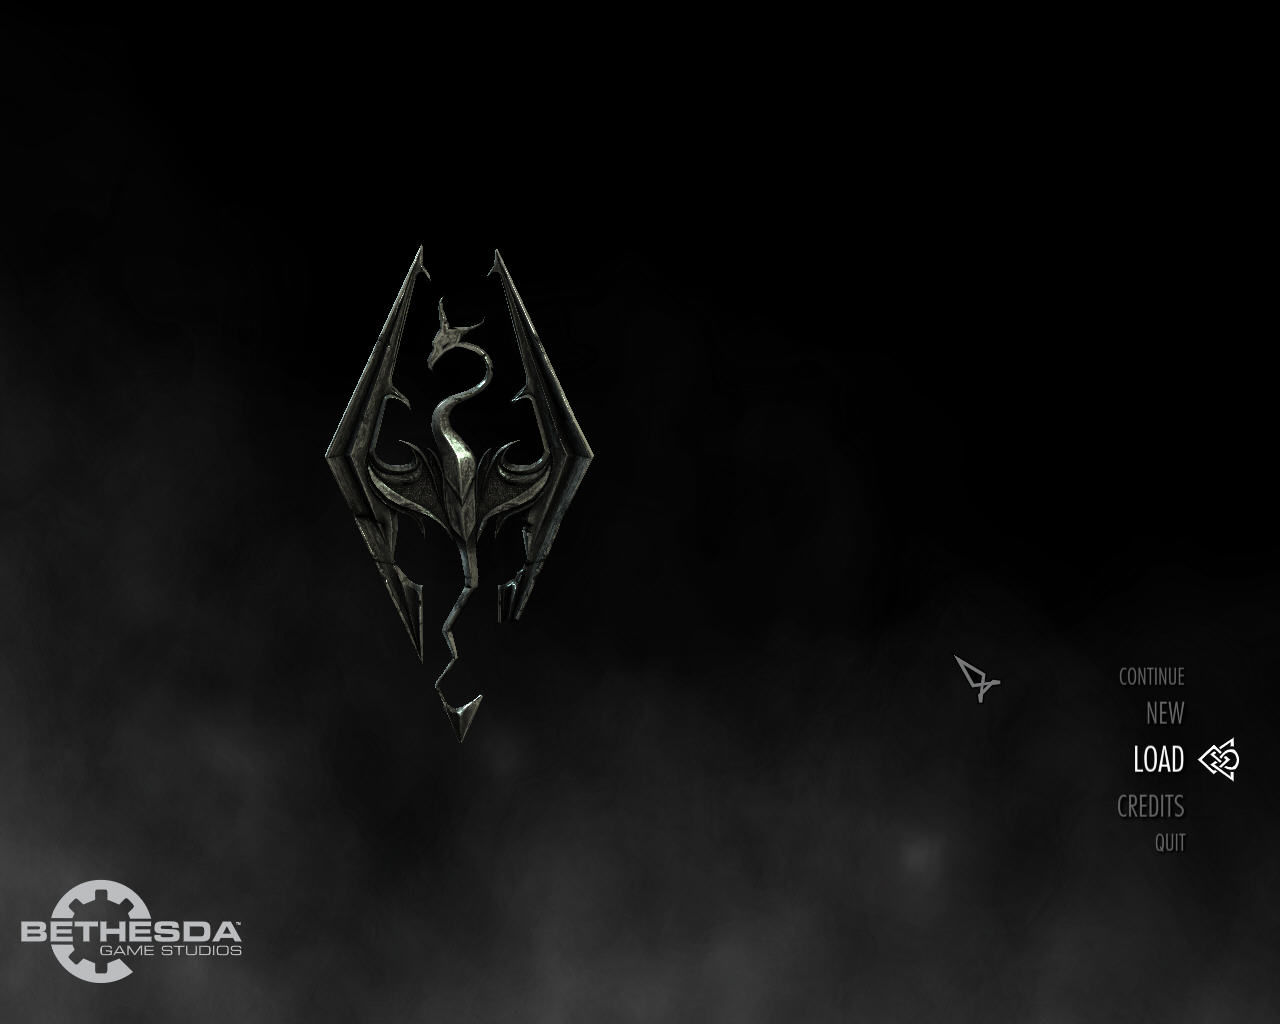 The Elder Scrolls V: Skyrim Windows The rather modestly designed main menu